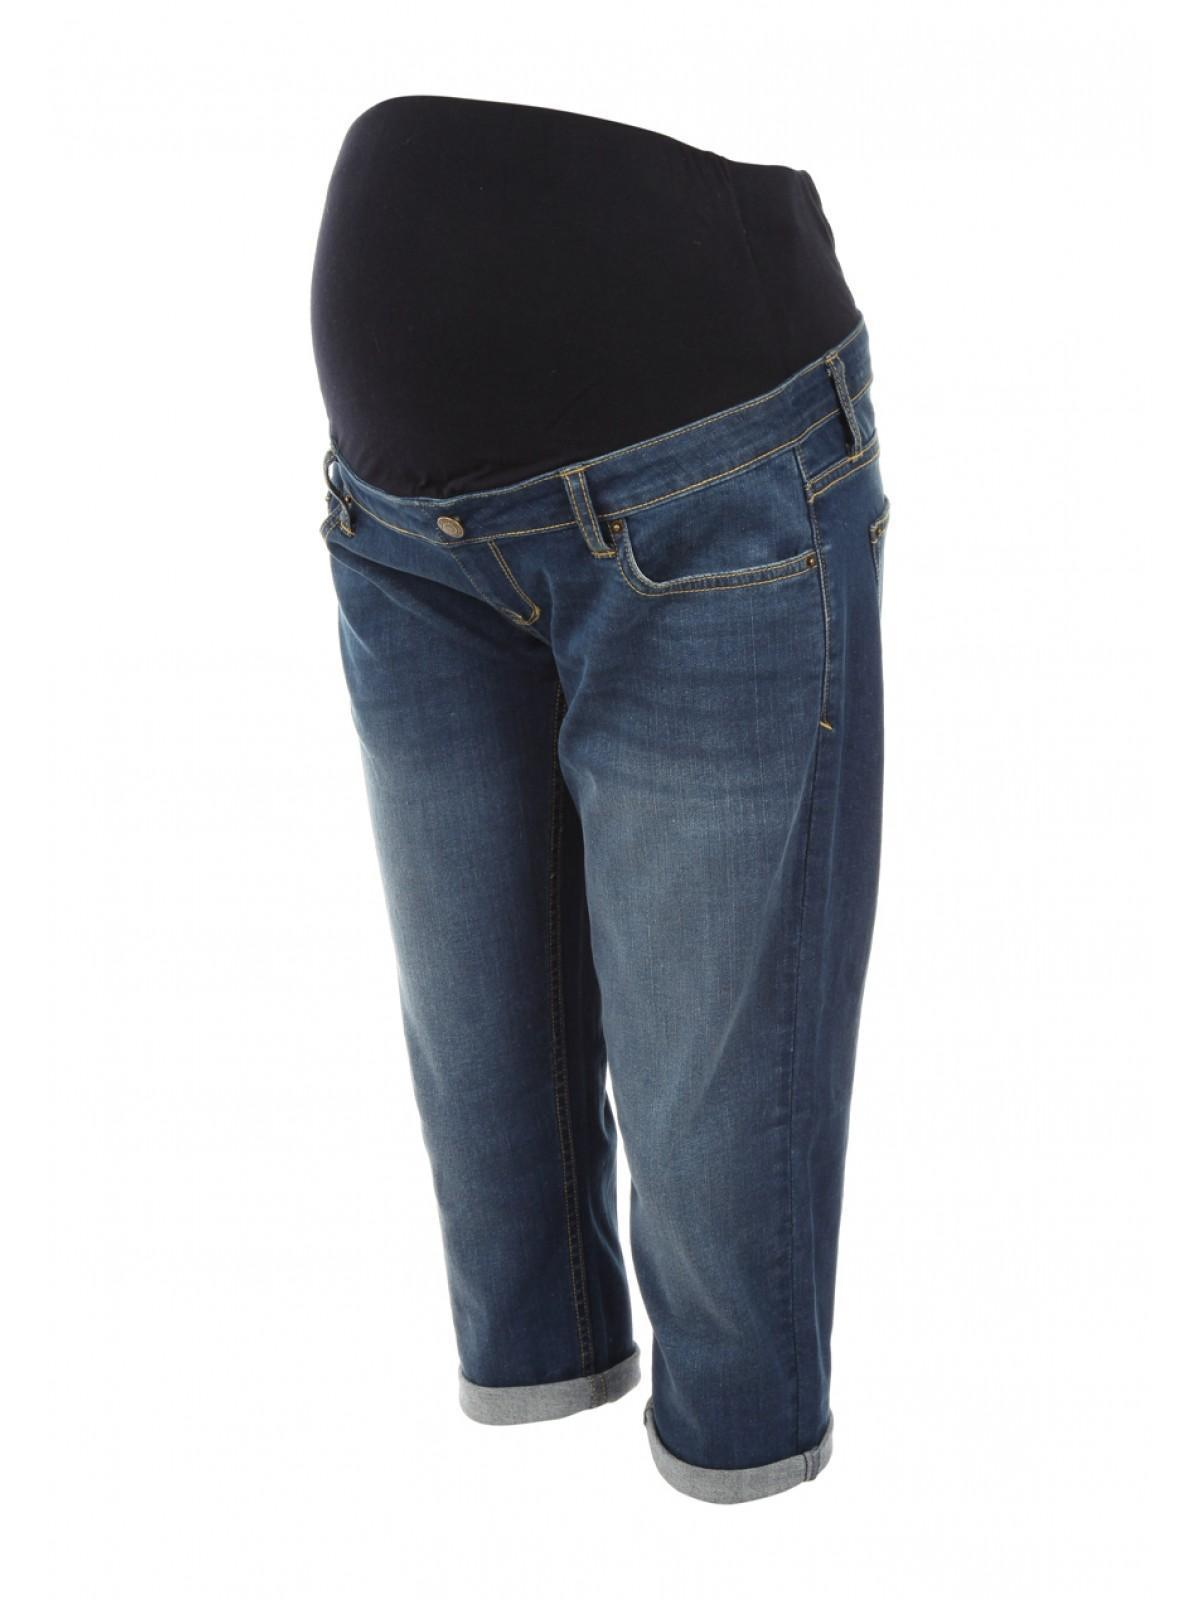 Womens Maternity Crop Jeans | Peacocks